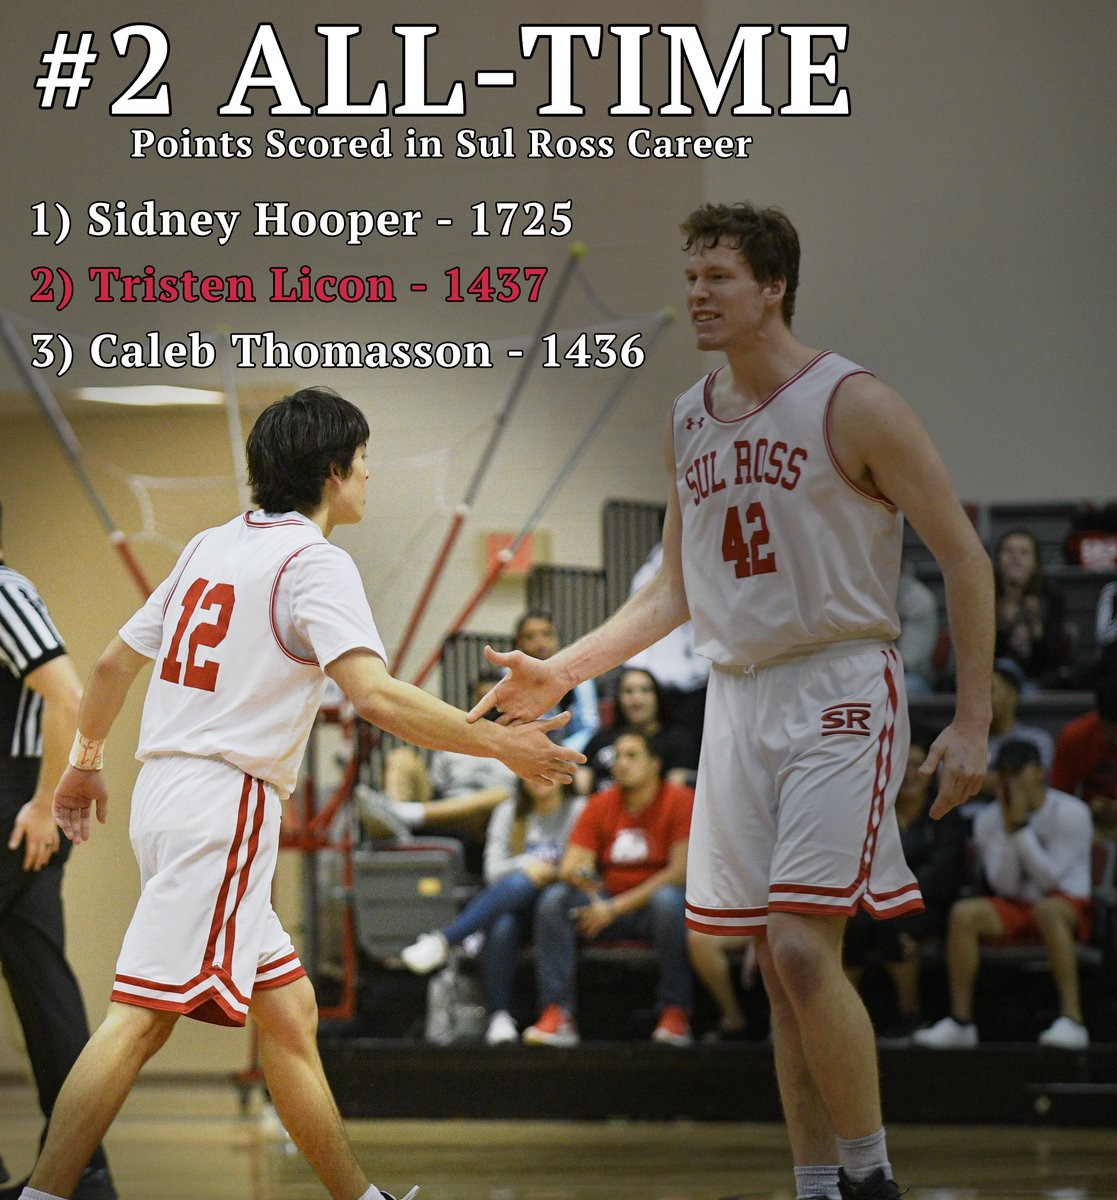 With 20 points tonight, Tristen Licon passed former teammate Caleb Thomasson to become the #2 all-time scorer in Sul Ross history.  #SRSU #ASChoops #d3hoops